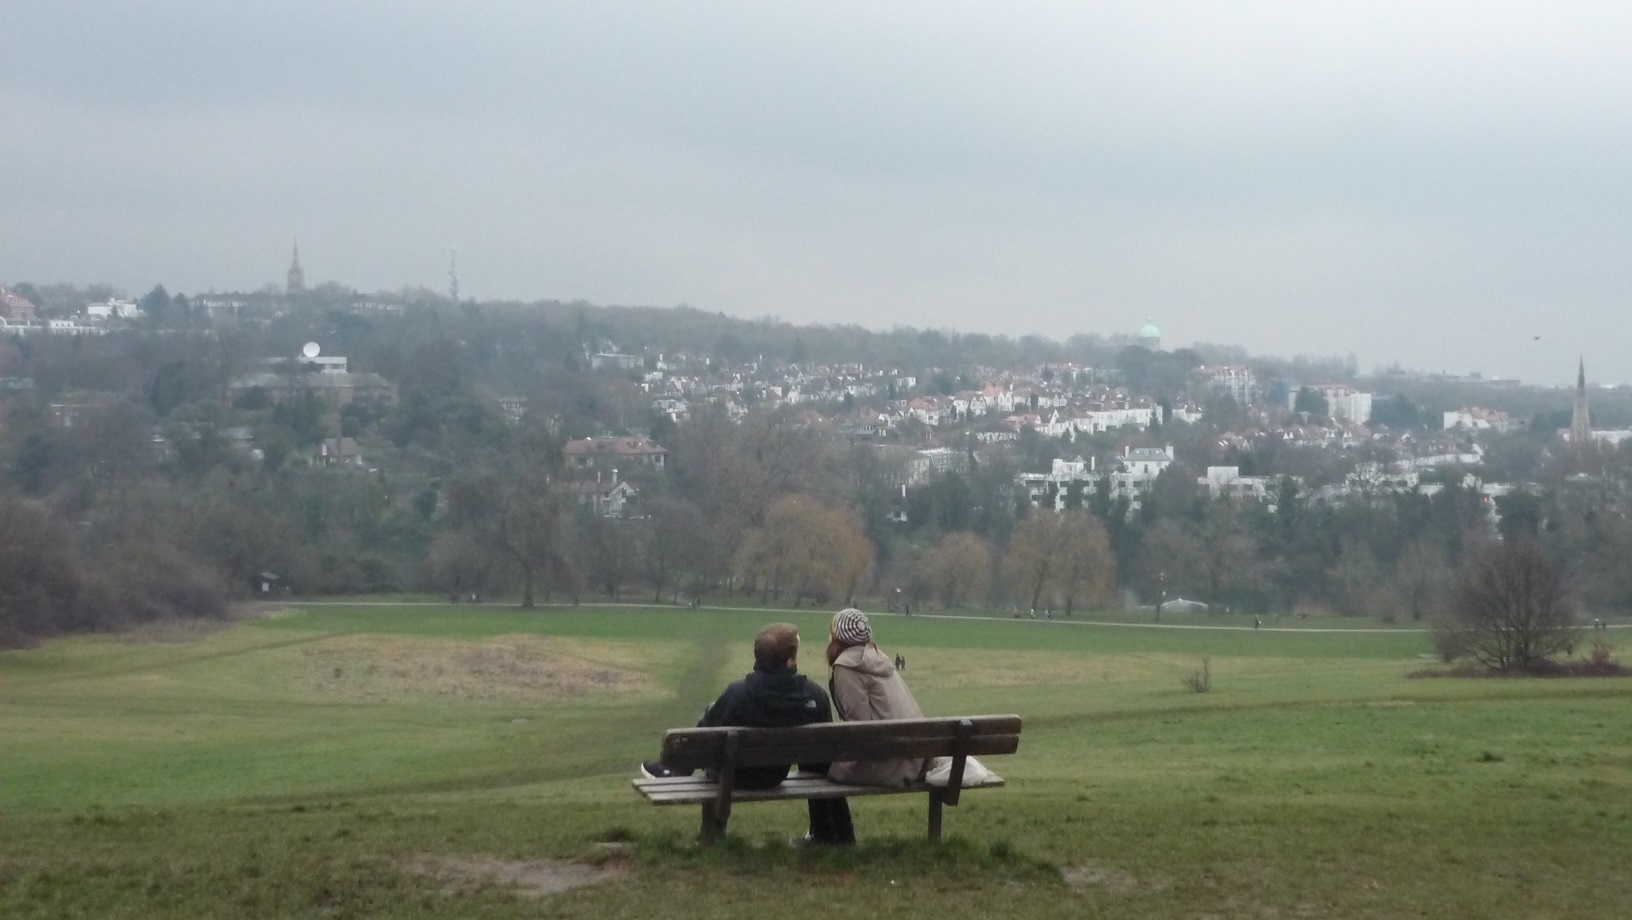 http://mytourduglobe.com/wp-content/uploads/2014/08/hampstead-heath.jpg